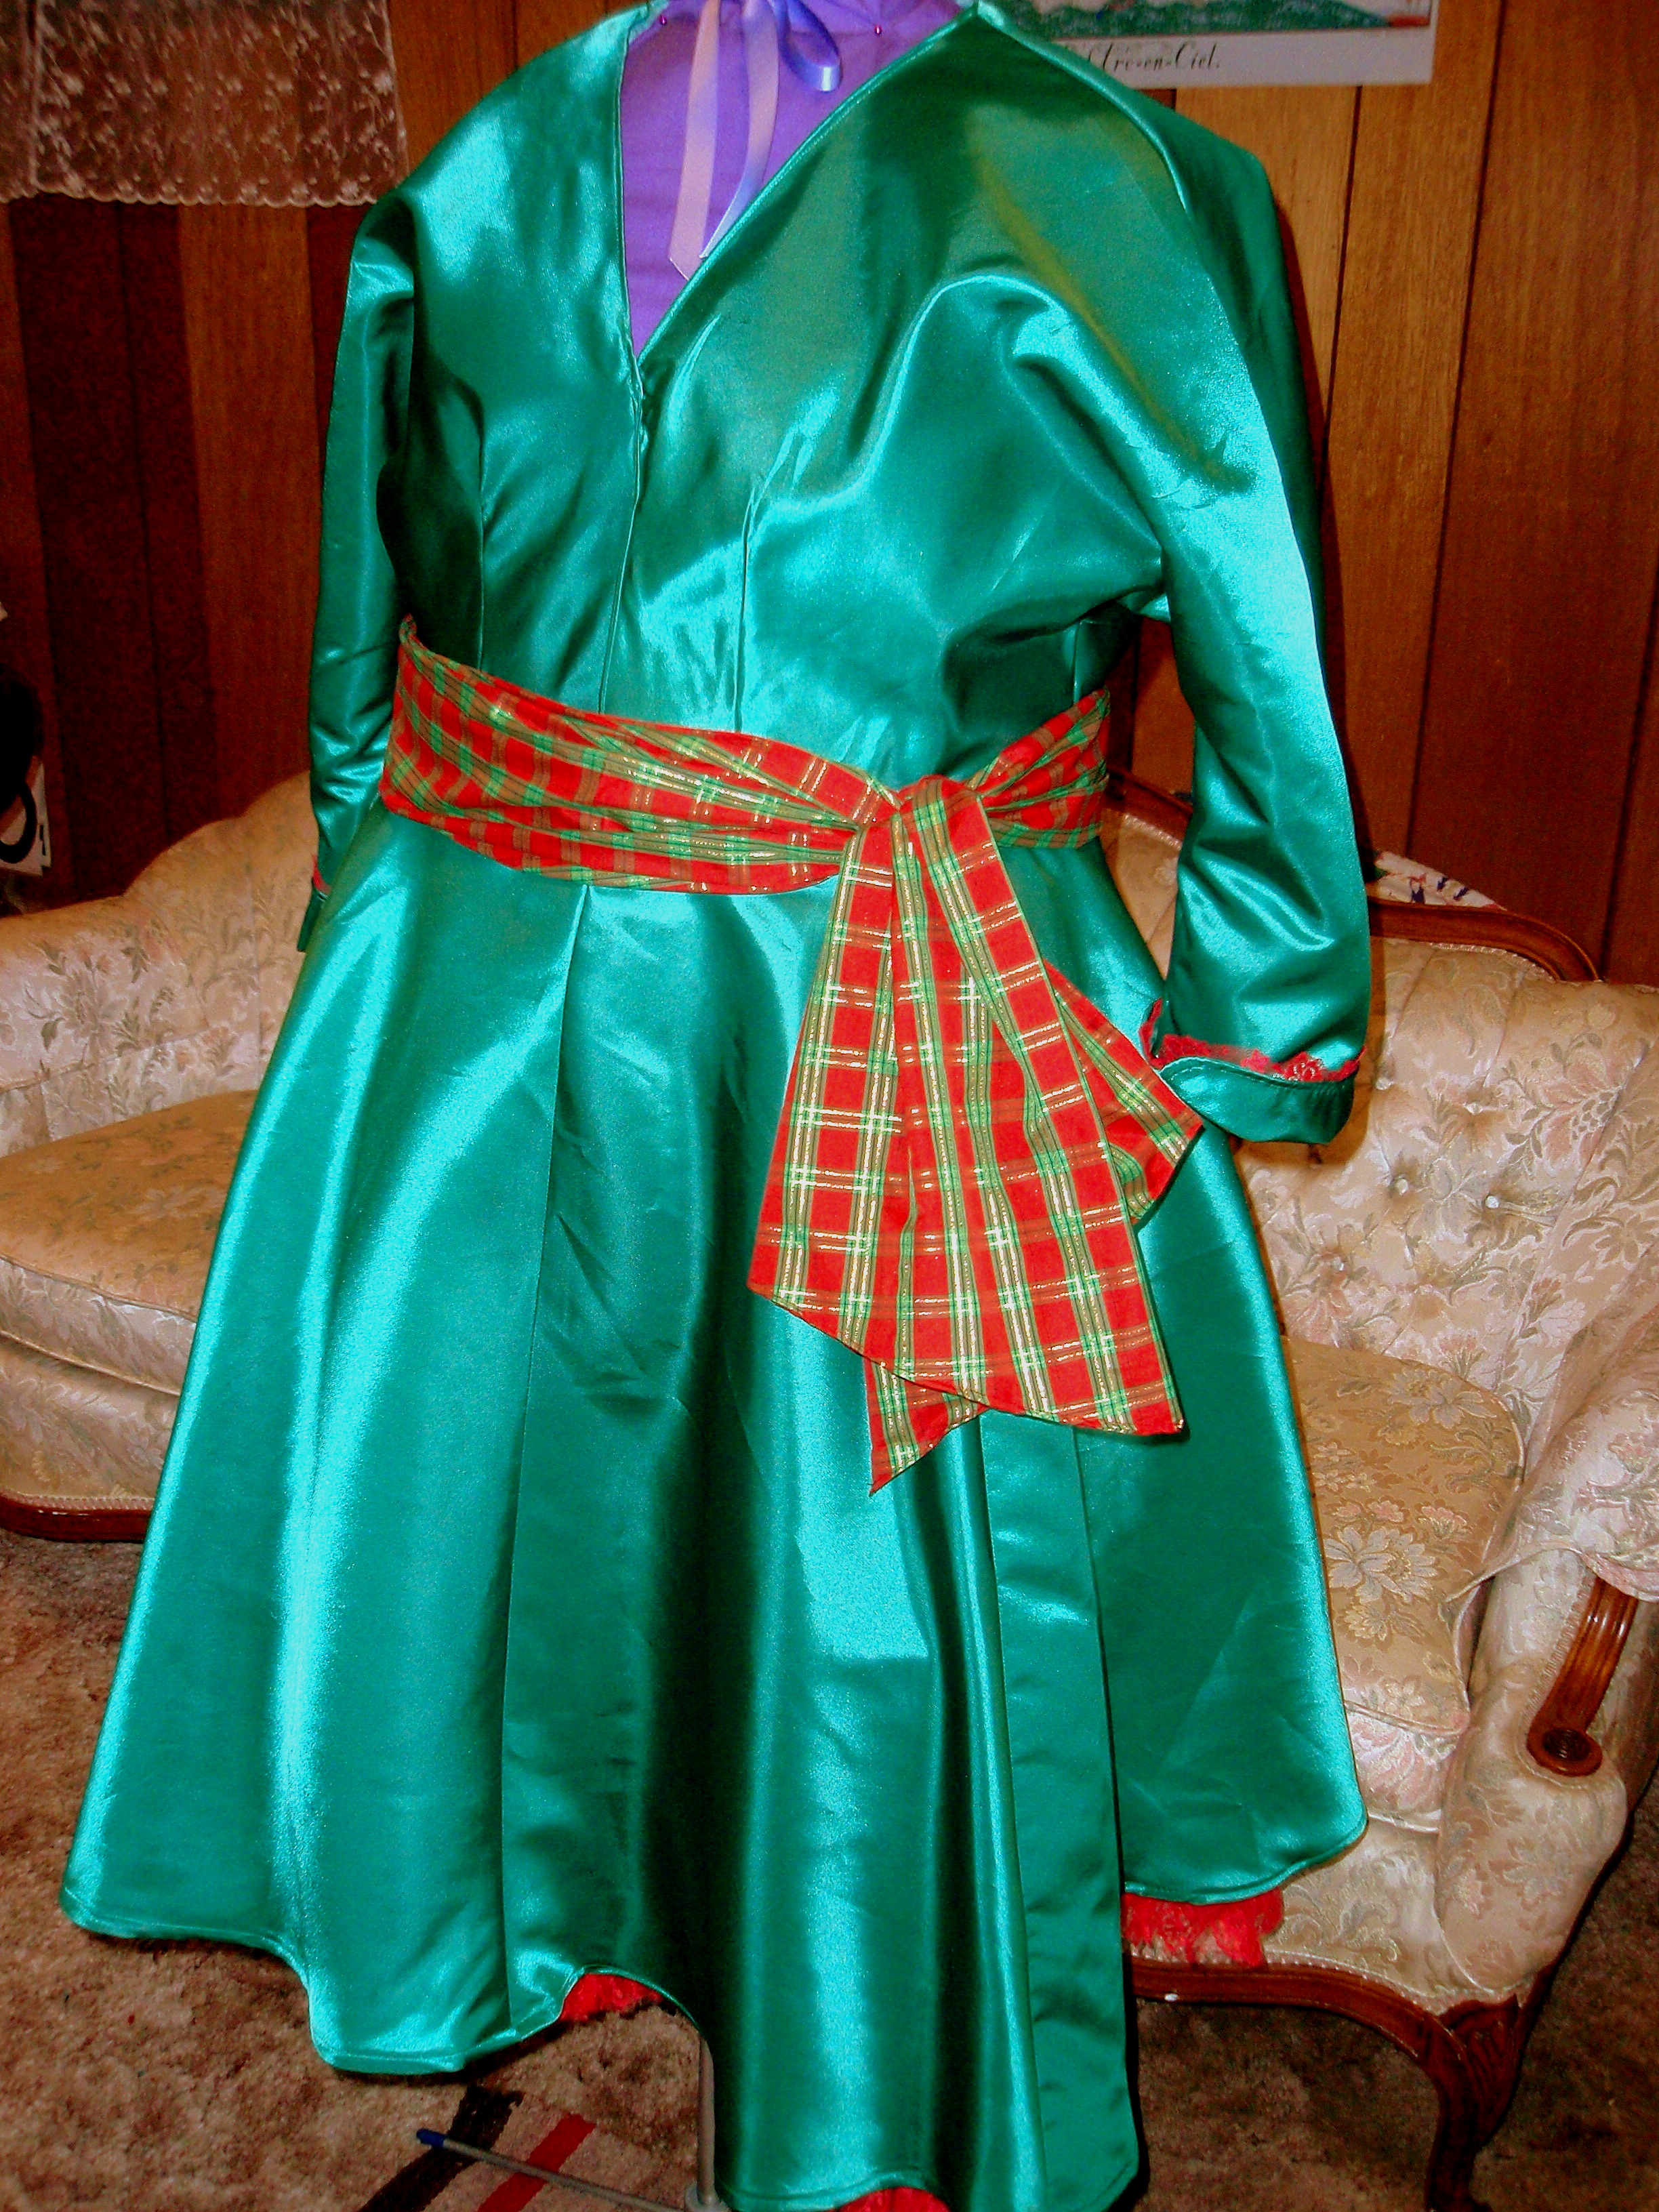 1955 Christmas Dress, First version